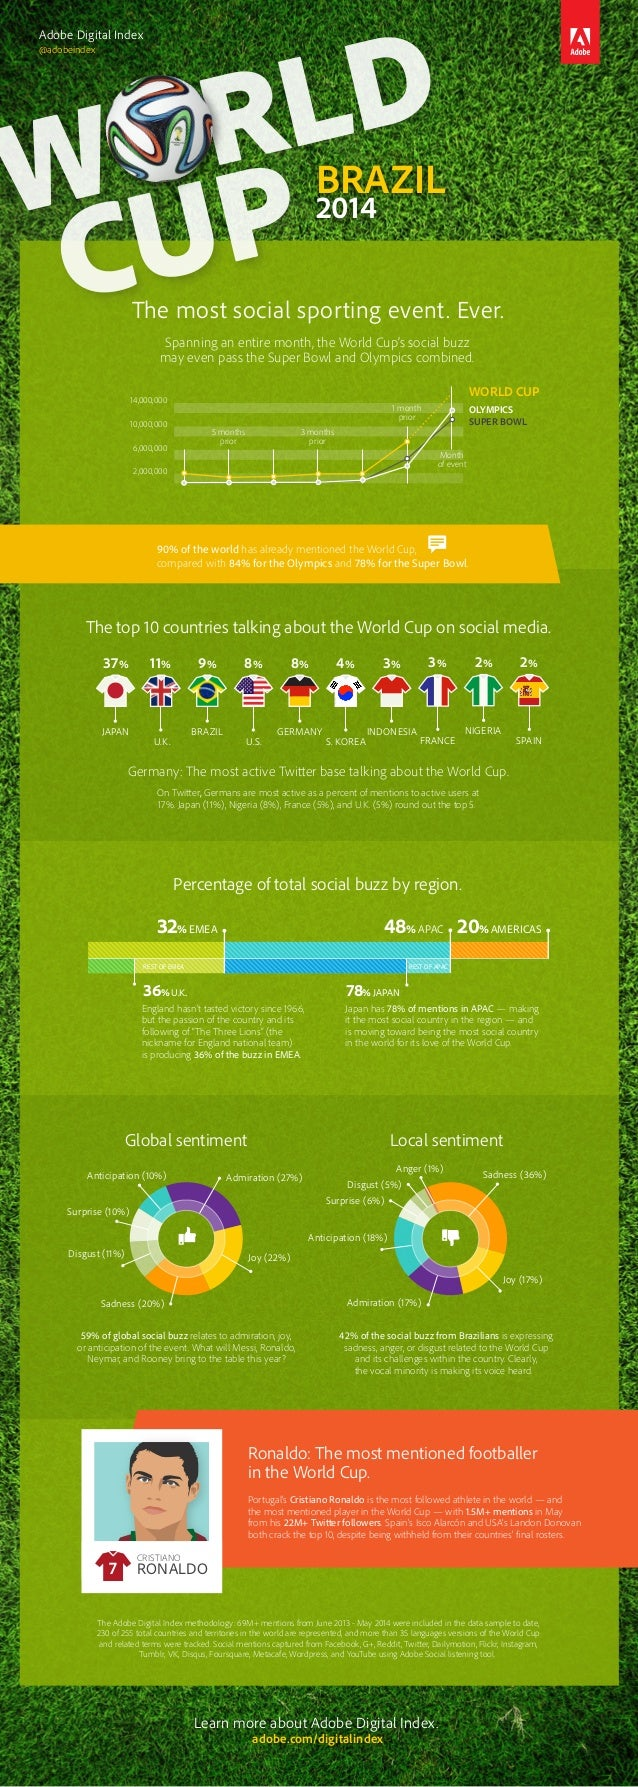 The most social sporting event. Ever. Spanning an entire month, the World Cup's social buzz may even pass the Super Bowl a...